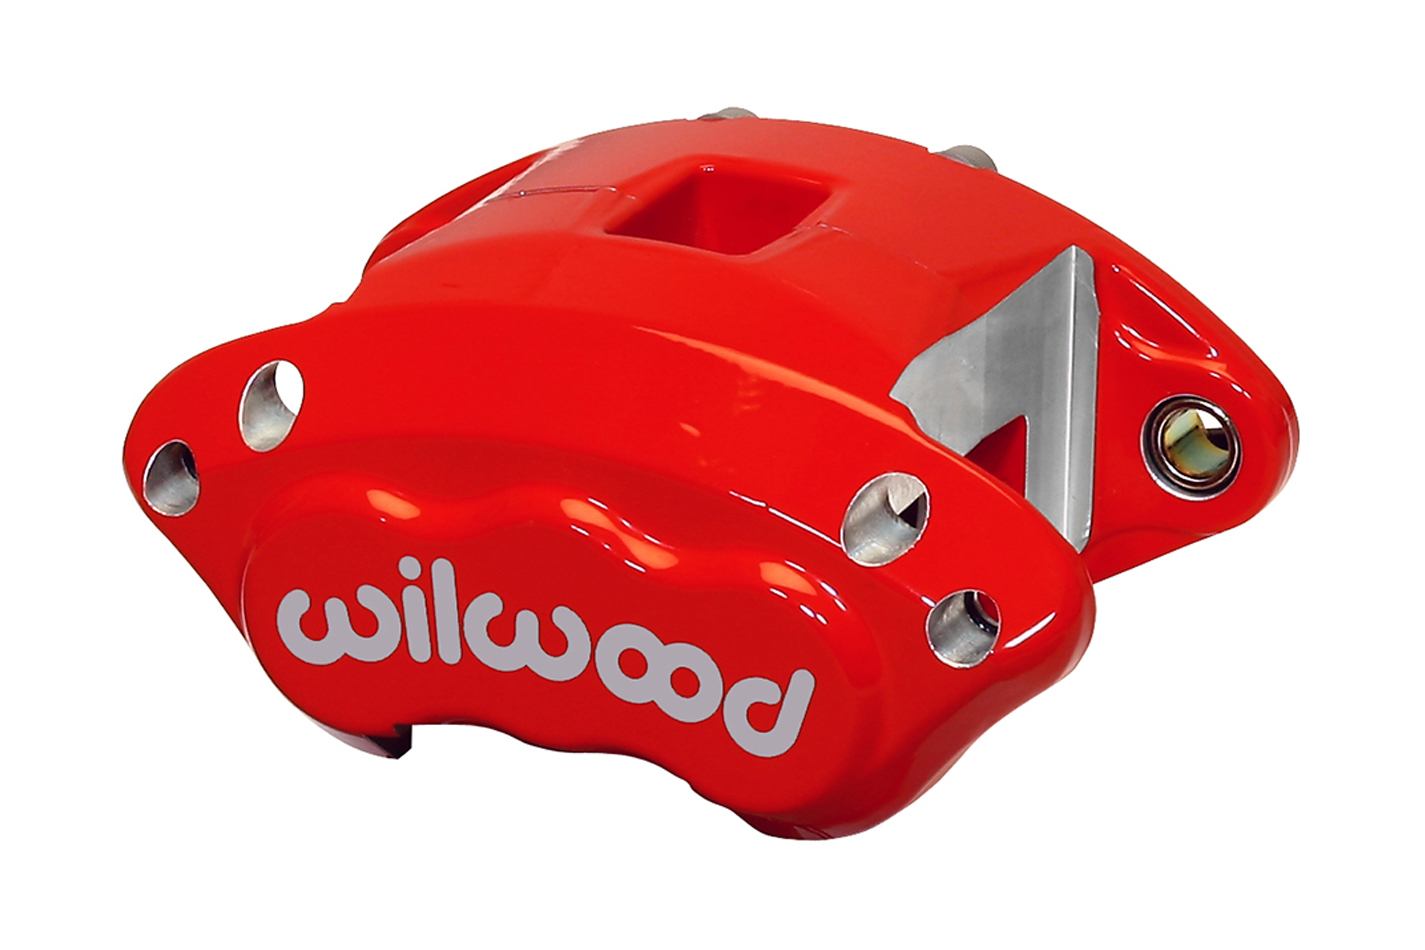 Wilwood 120-11873-RD Brake Caliper, D154, 2 Piston, Aluminum, Red Anodized, 12.190 in OD x 0.810 in Thick Rotor, 5.460 in Floating Mount, Each